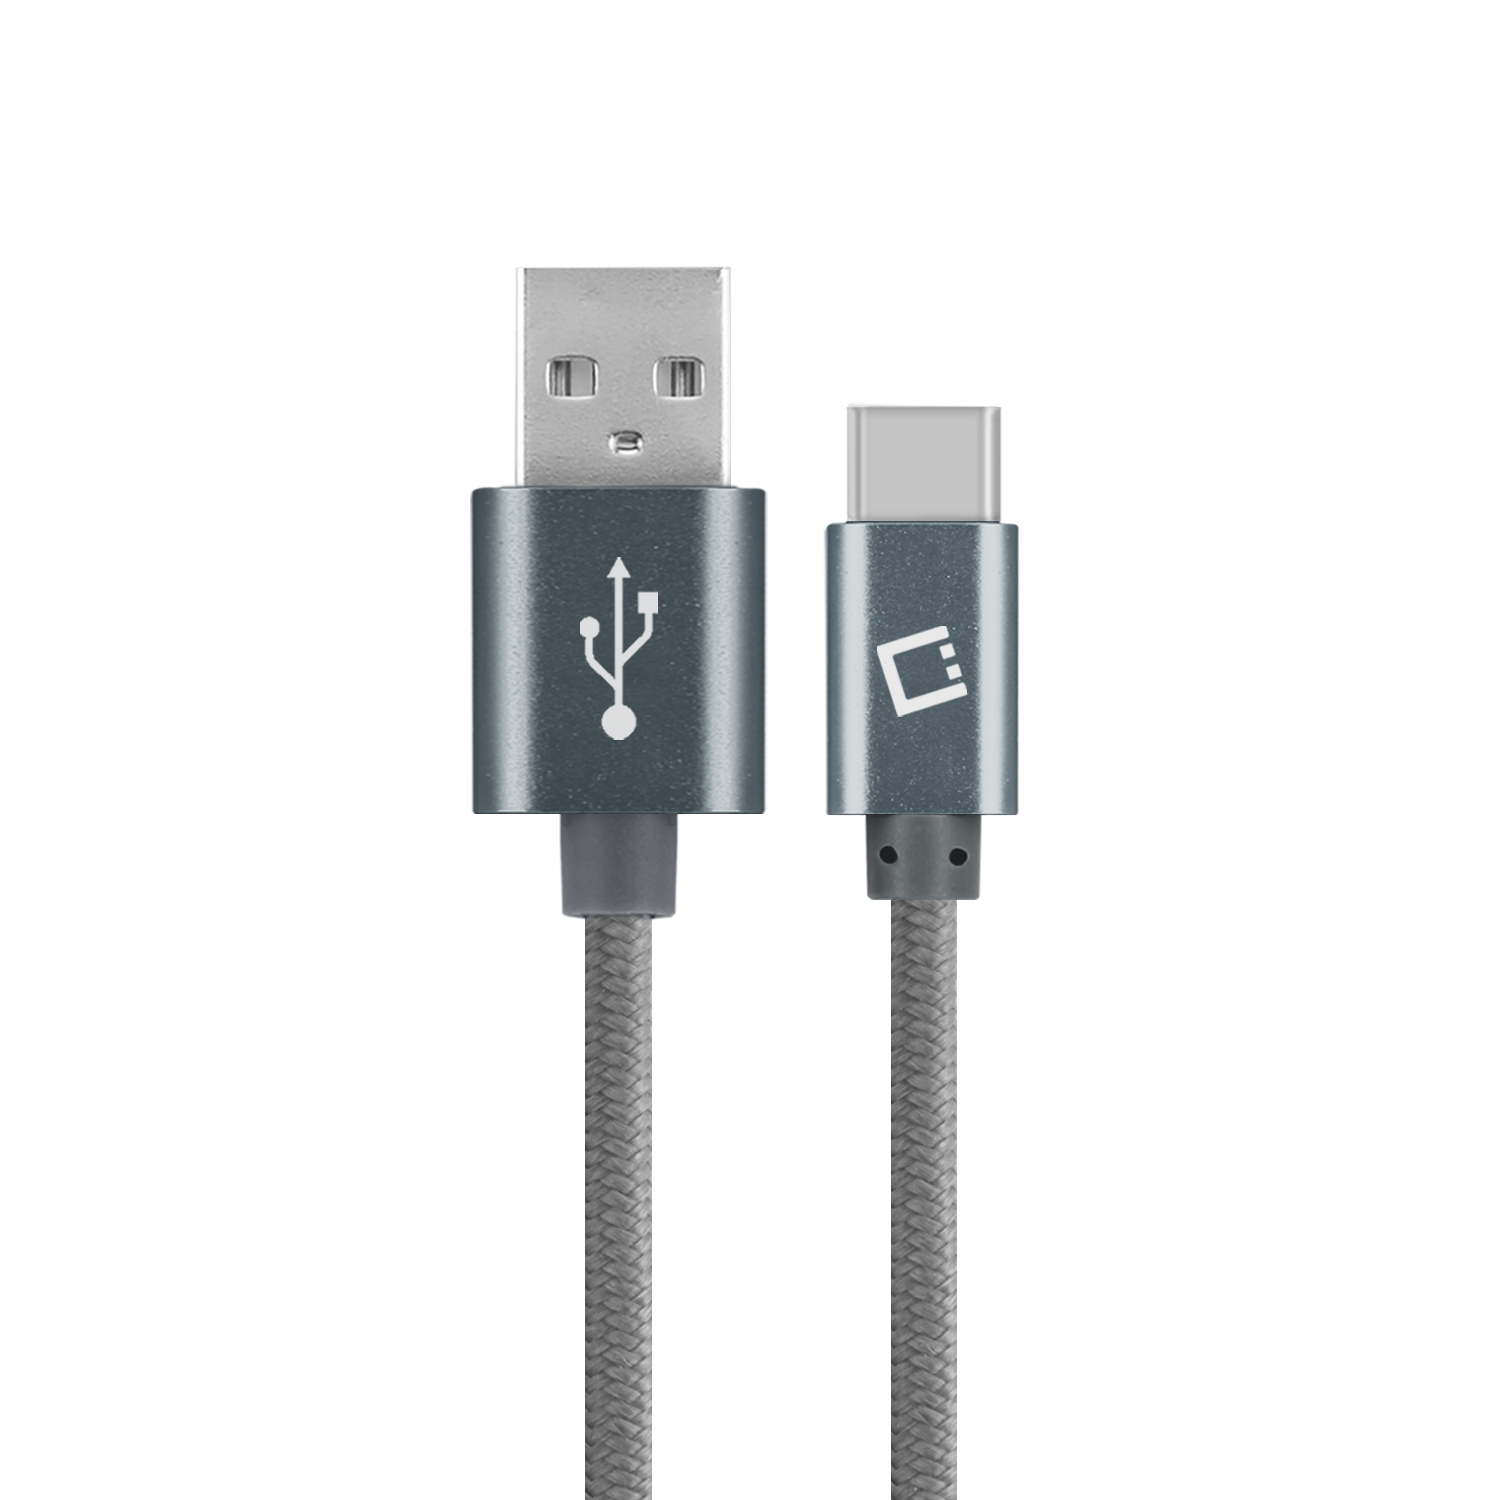 LG Stylo 6 USB Type-C To Type-A Braided Data Power Cable Grey 4ft Braided